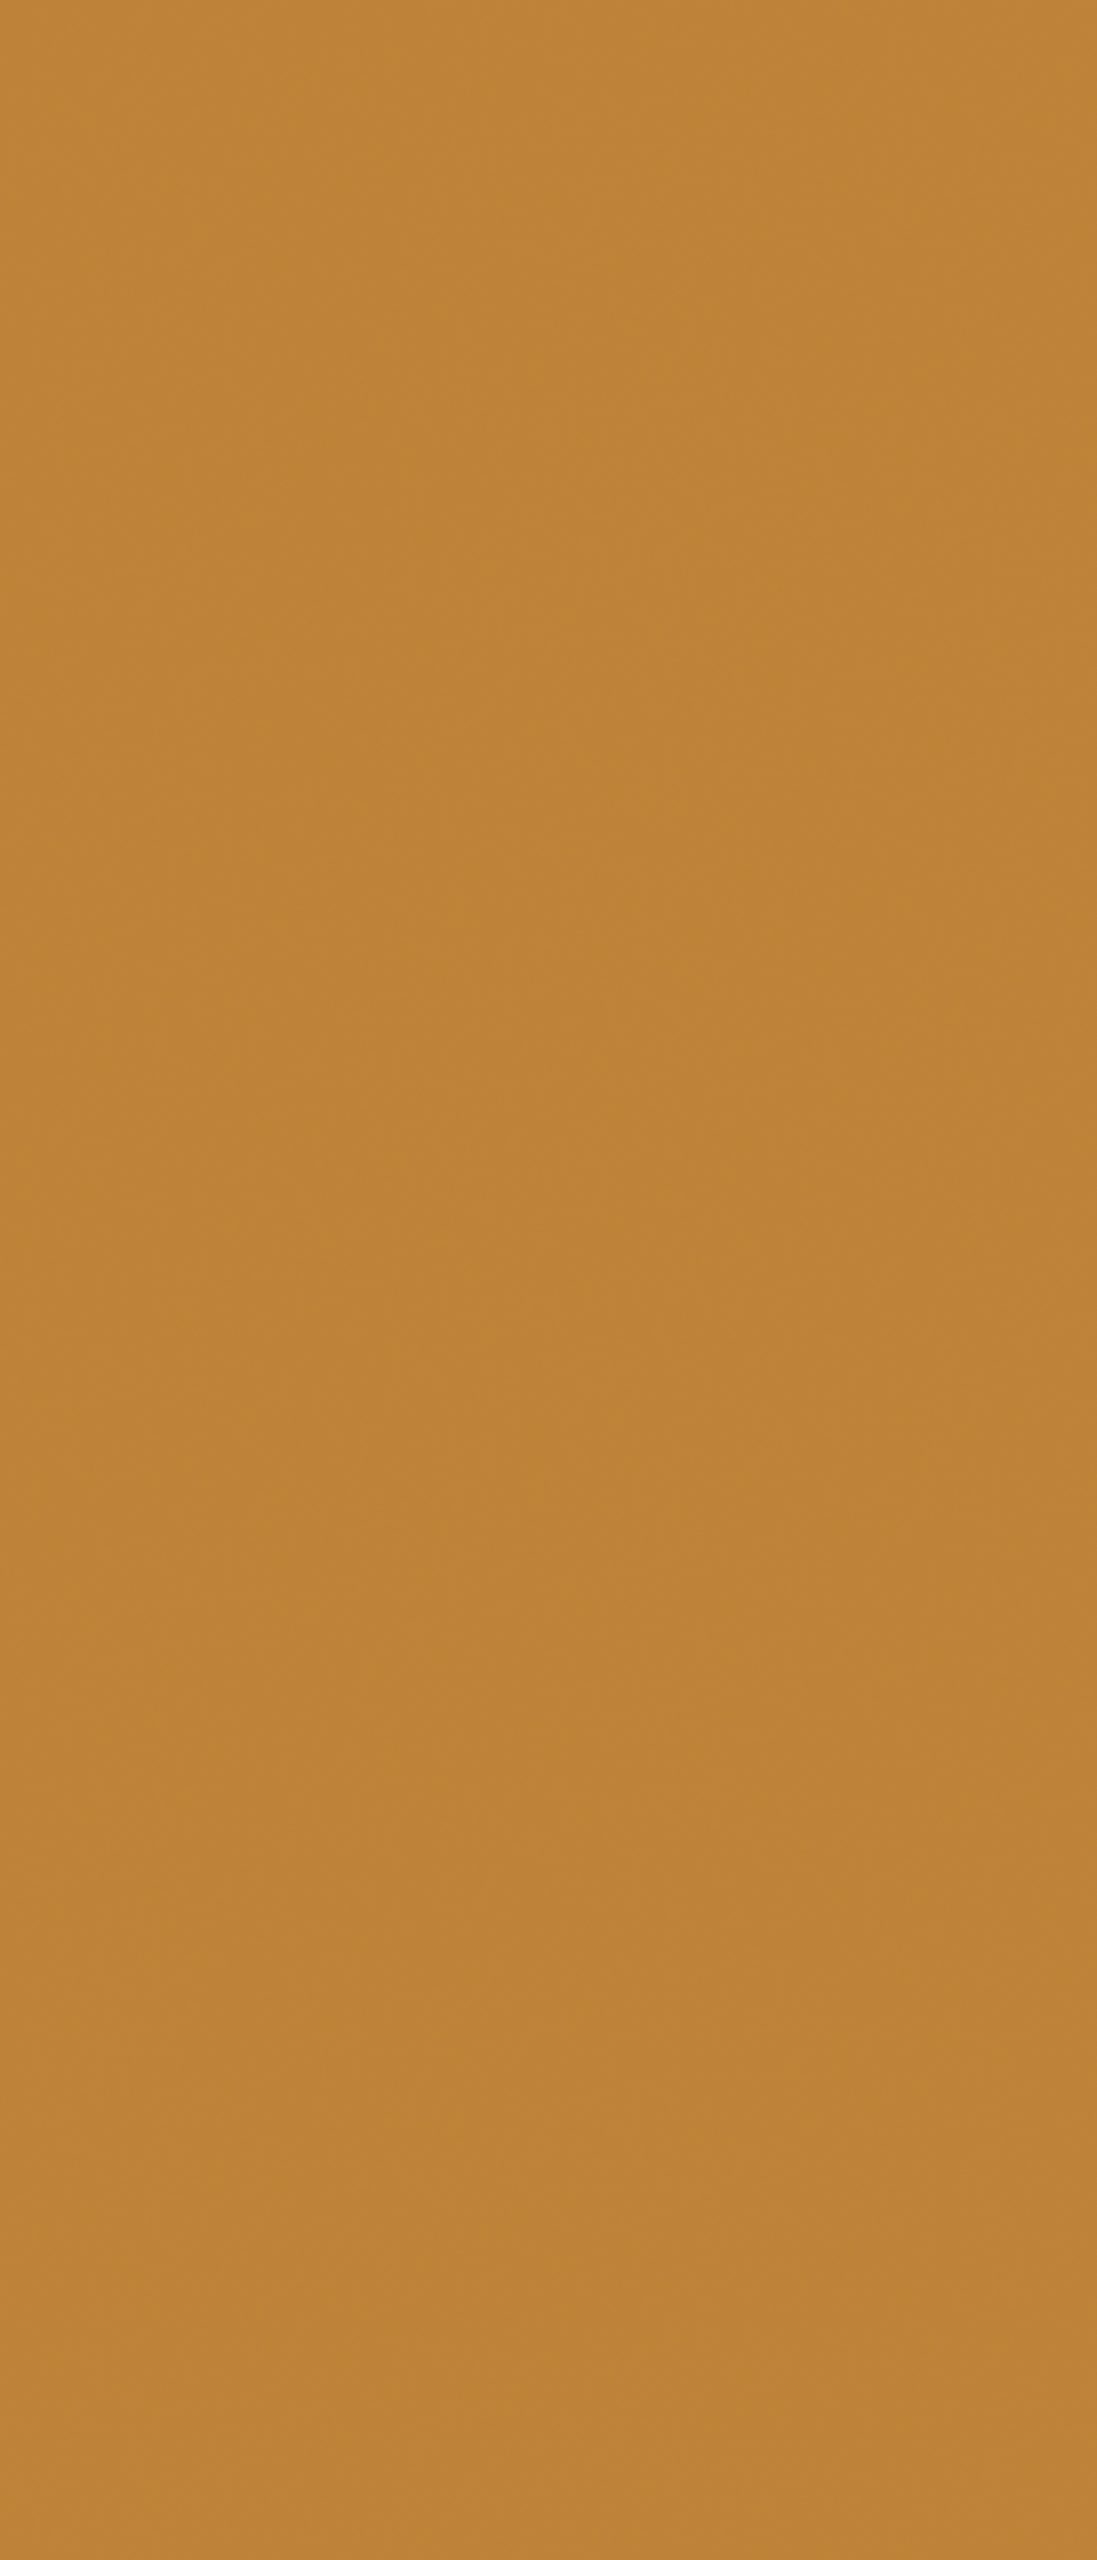 Buildtech 2.0 Bold Colors Mustard Matte 6mm 120 x 280